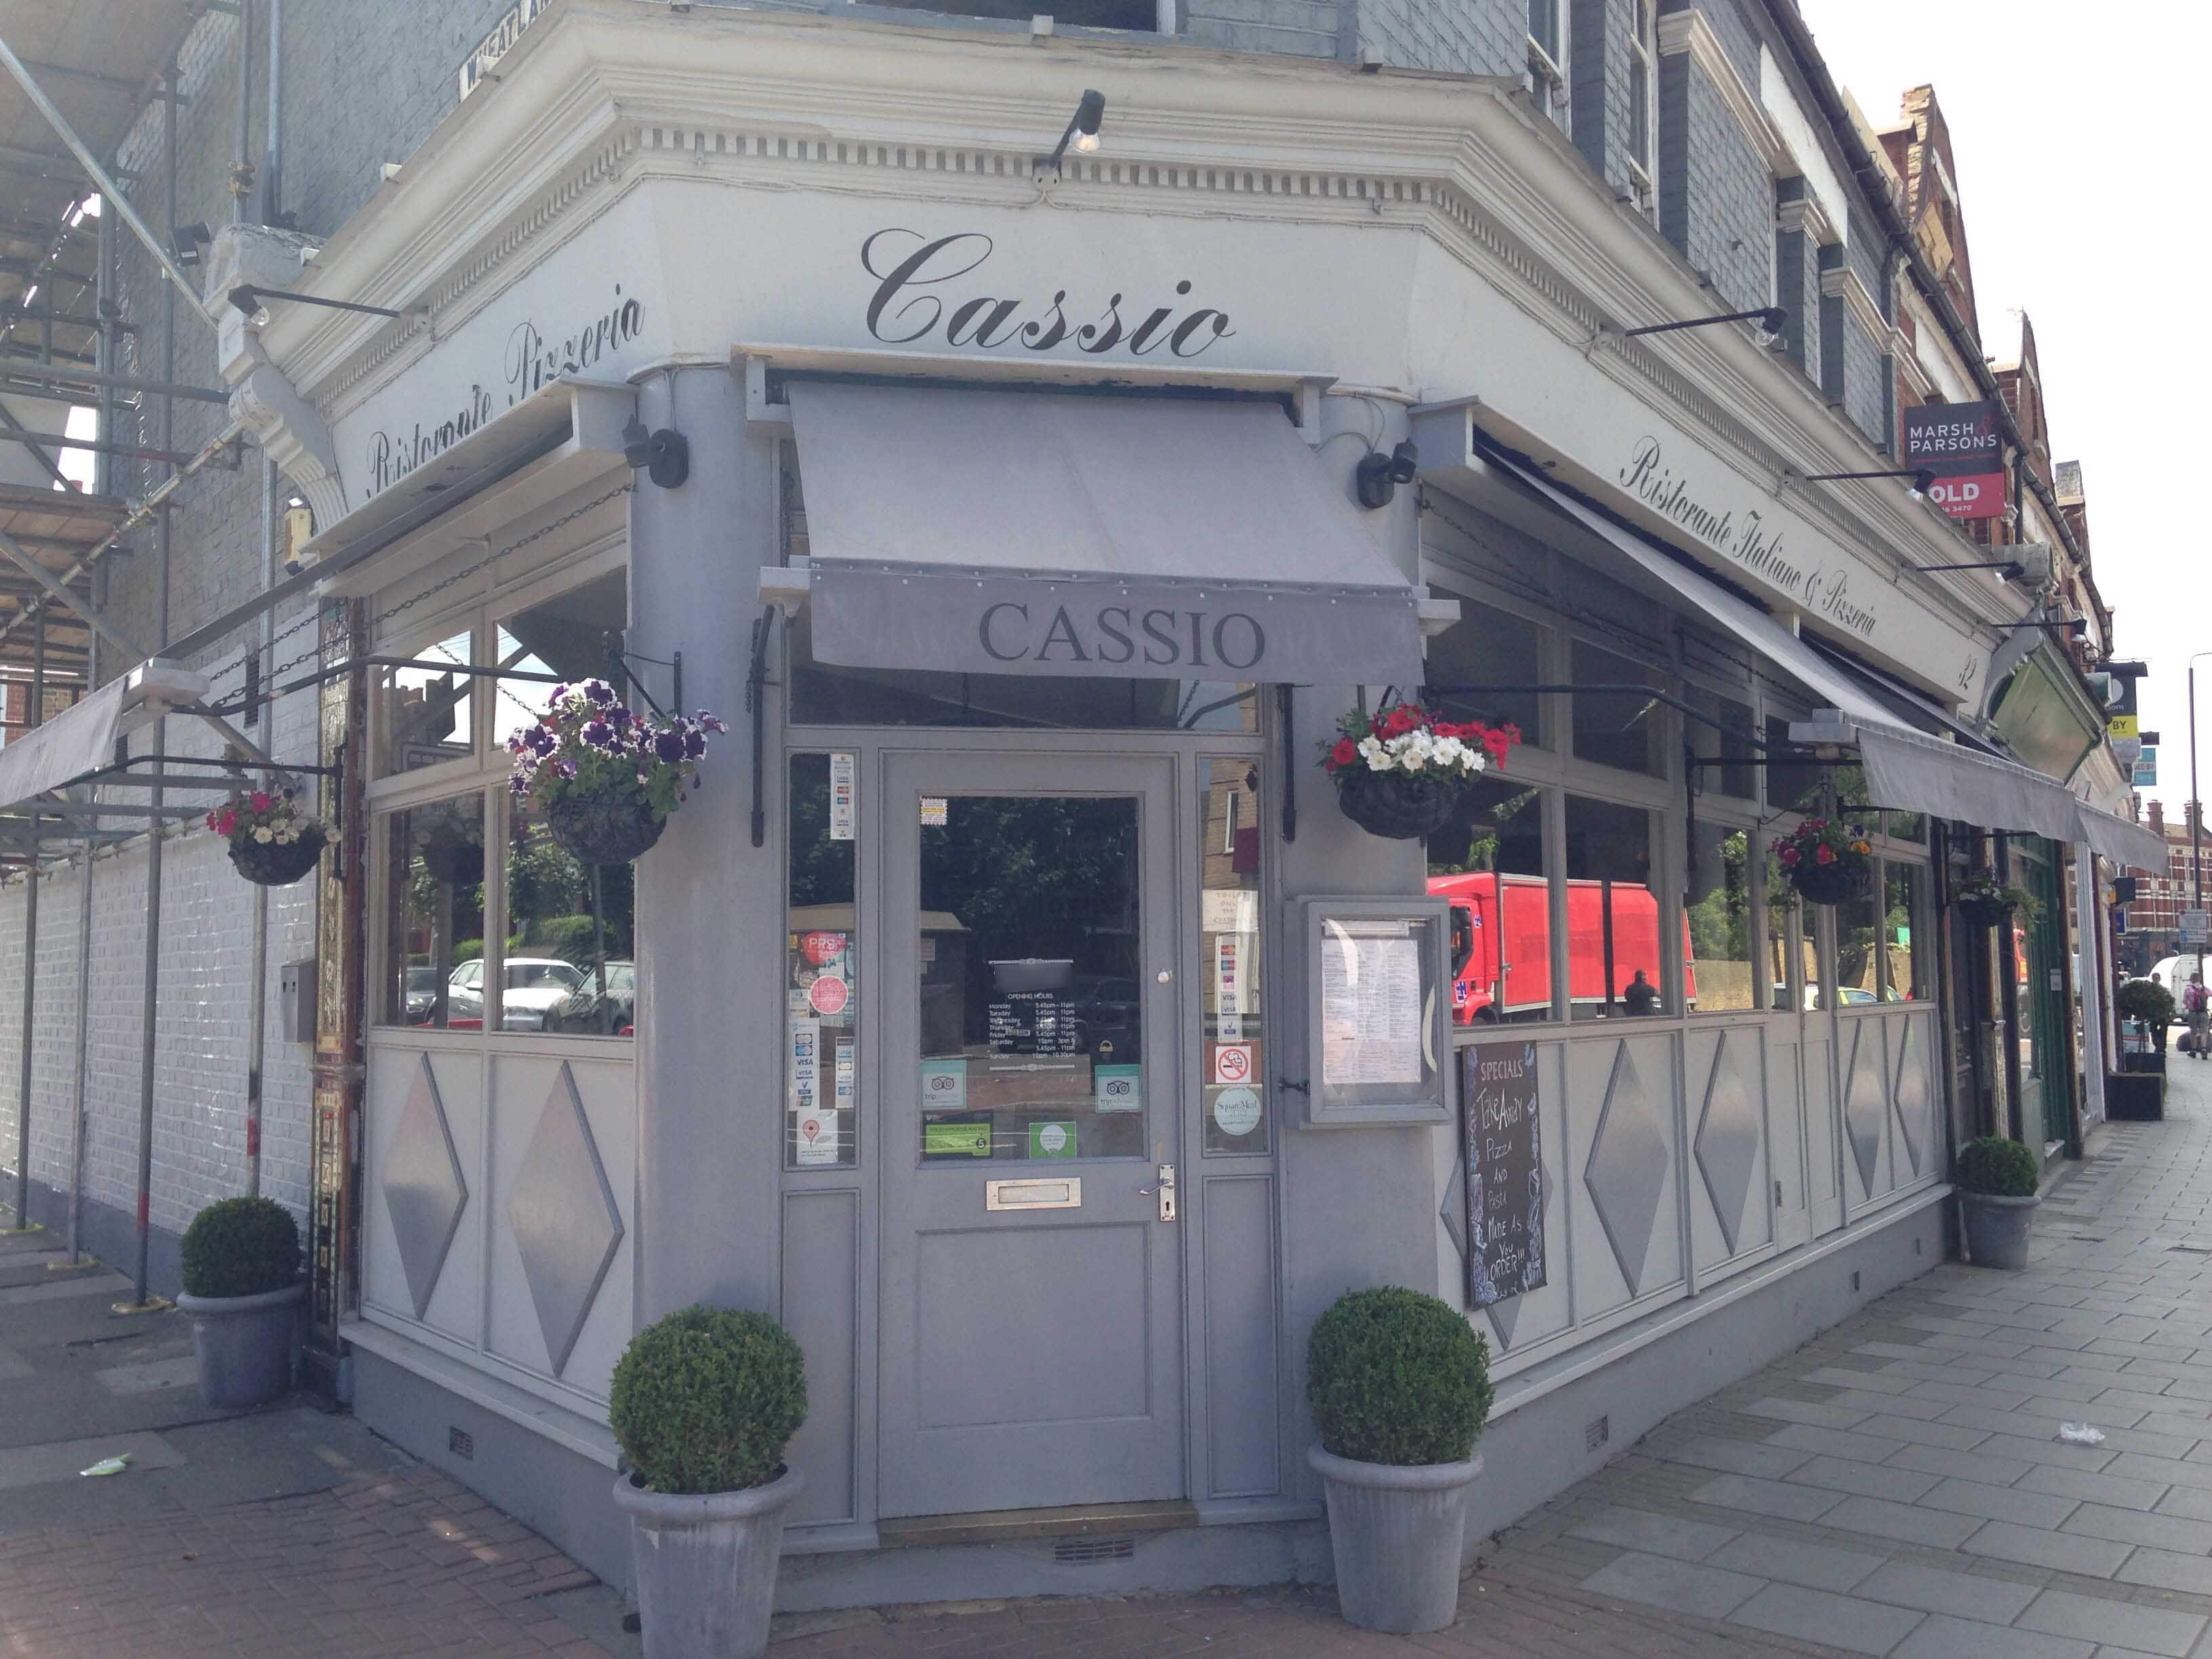 cassio restaurant tooting